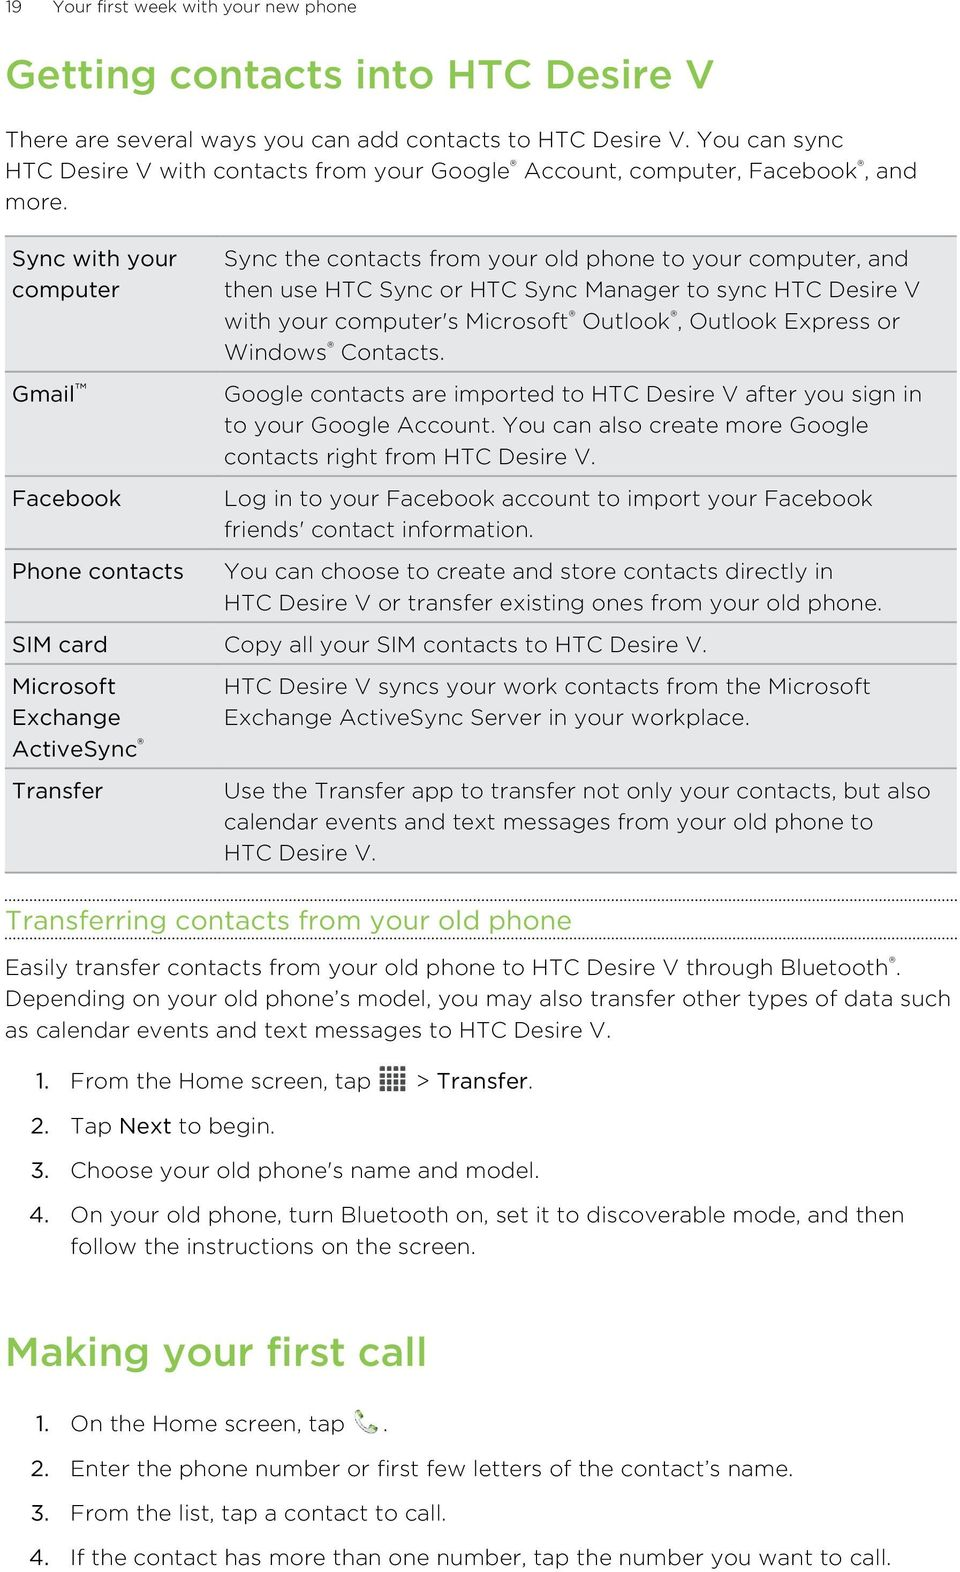 Sync with your computer Gmail Facebook Phone contacts Sync the contacts from your old phone to your computer, and then use HTC Sync or HTC Sync Manager to sync HTC Desire V with your computer's